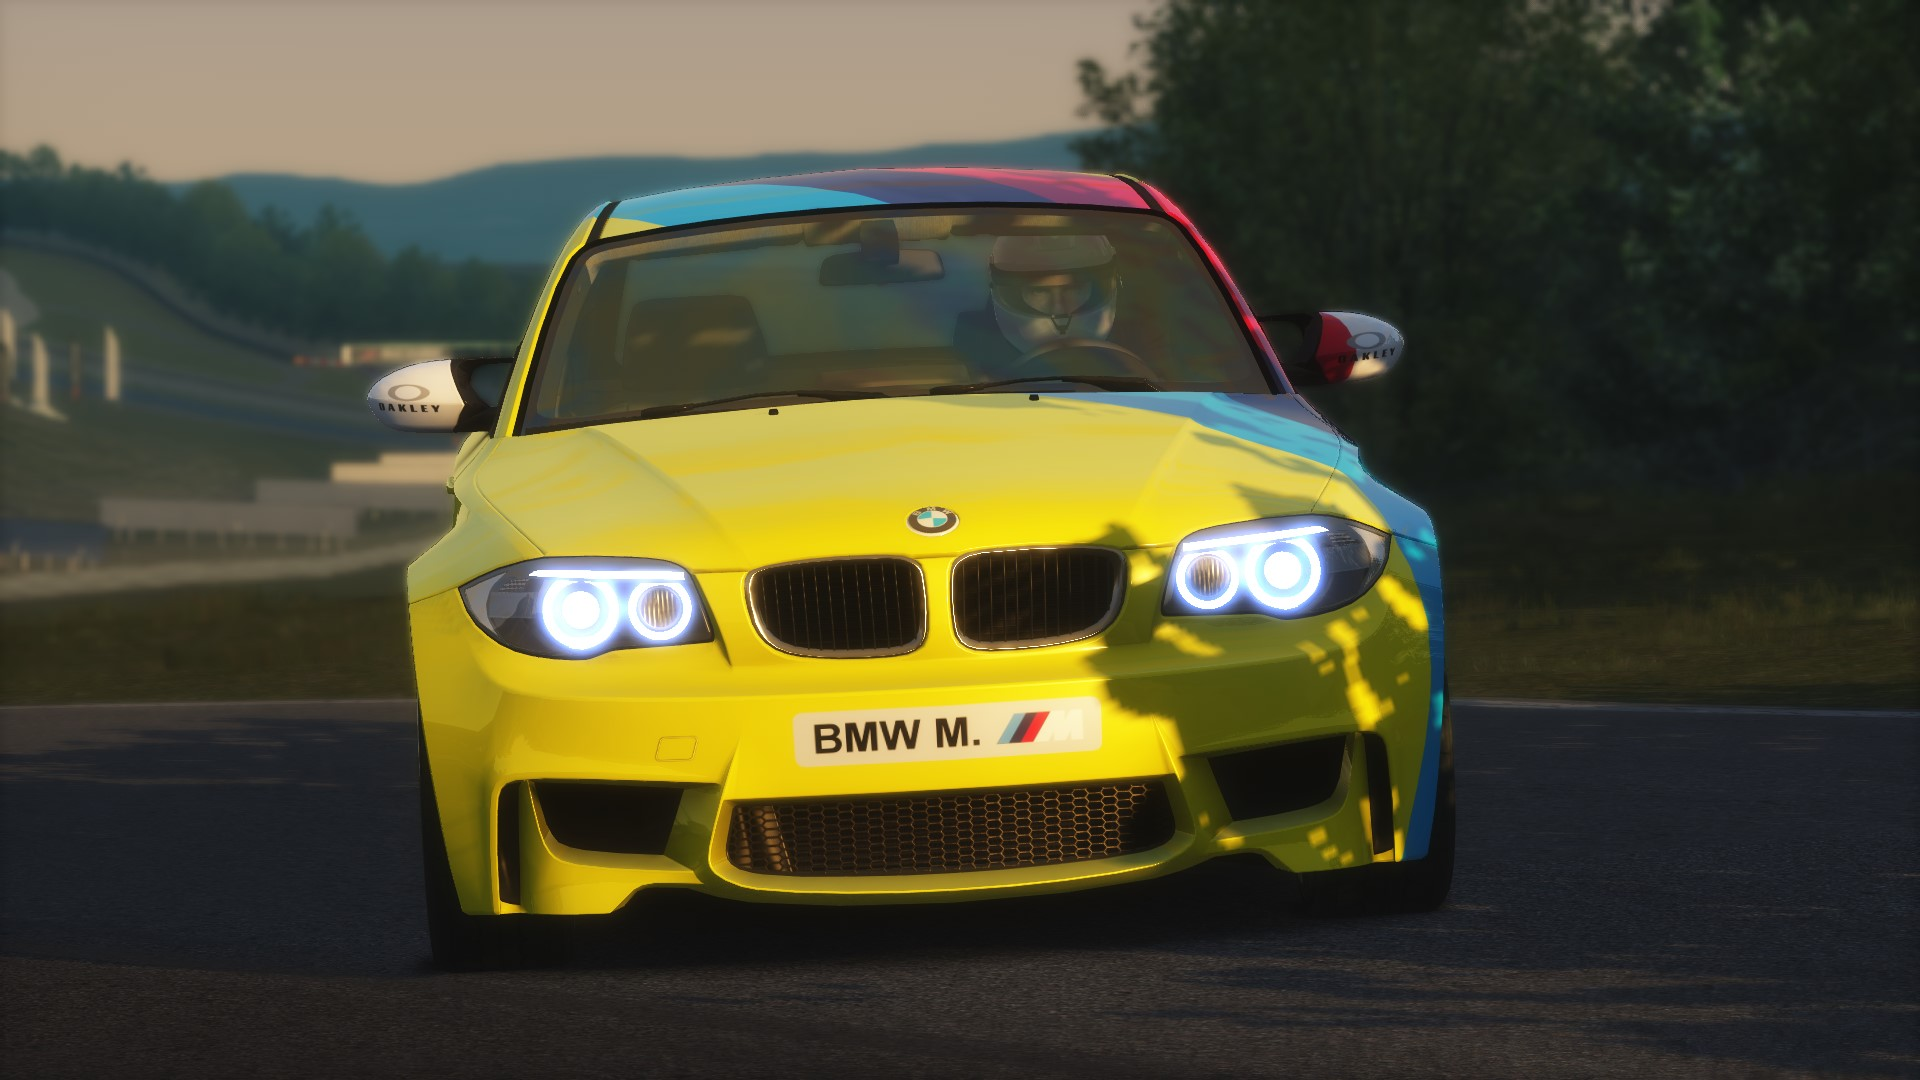 Screenshot_bmw_1m_nurburgring_10-2-2015-23-30-25.jpg